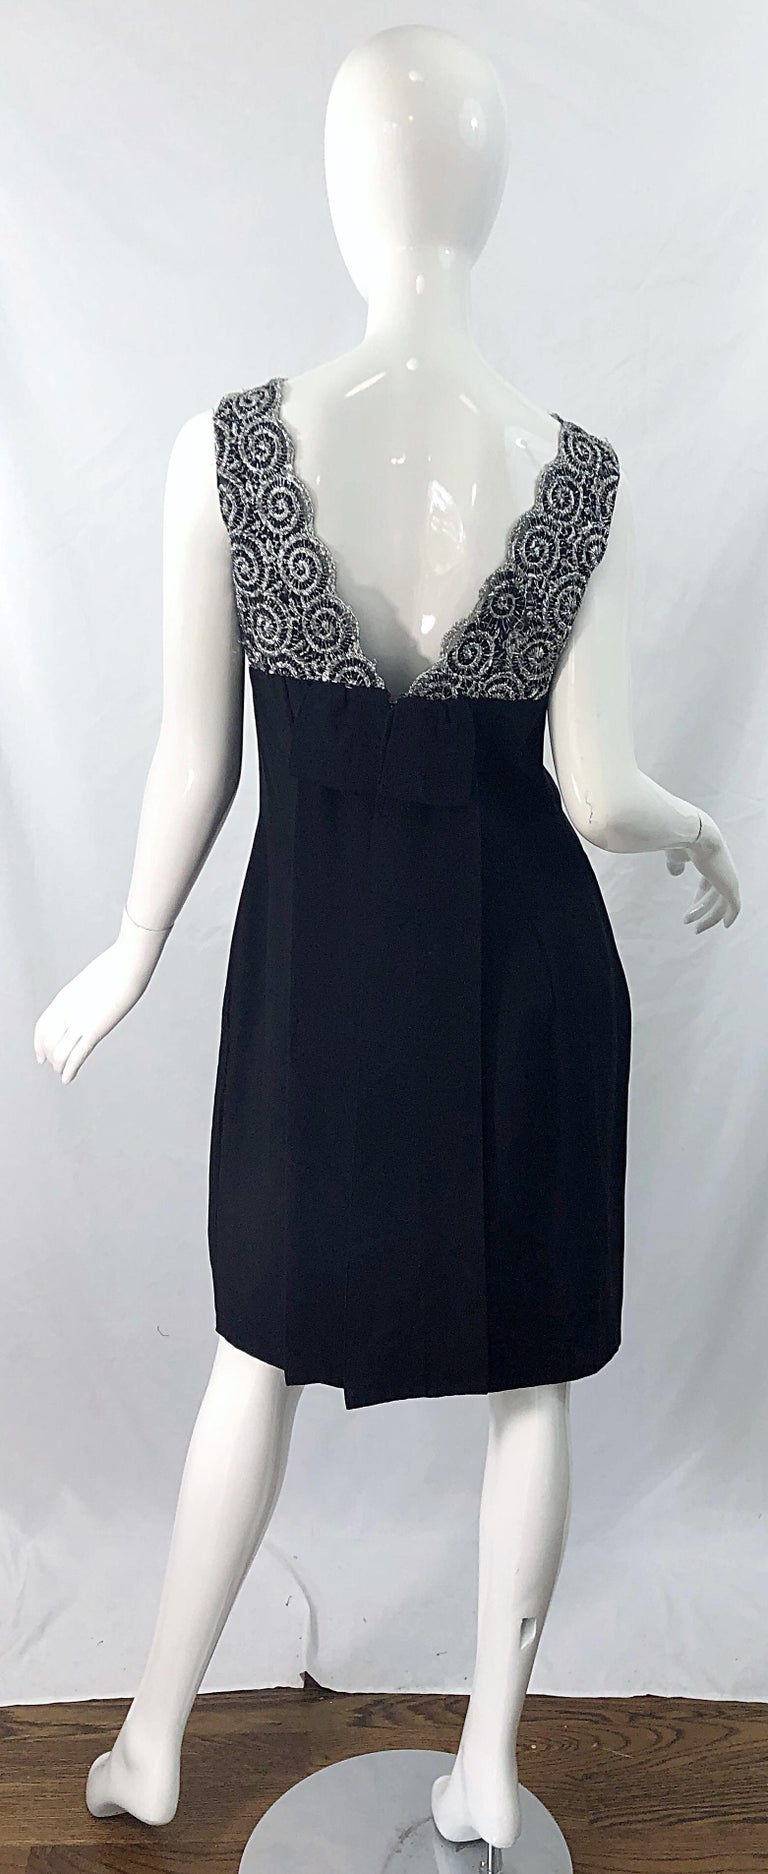 Women's Chic 1960s Black and Silver Metallic Lace Rayon Crepe Vintage 60s Sheath Dress For Sale